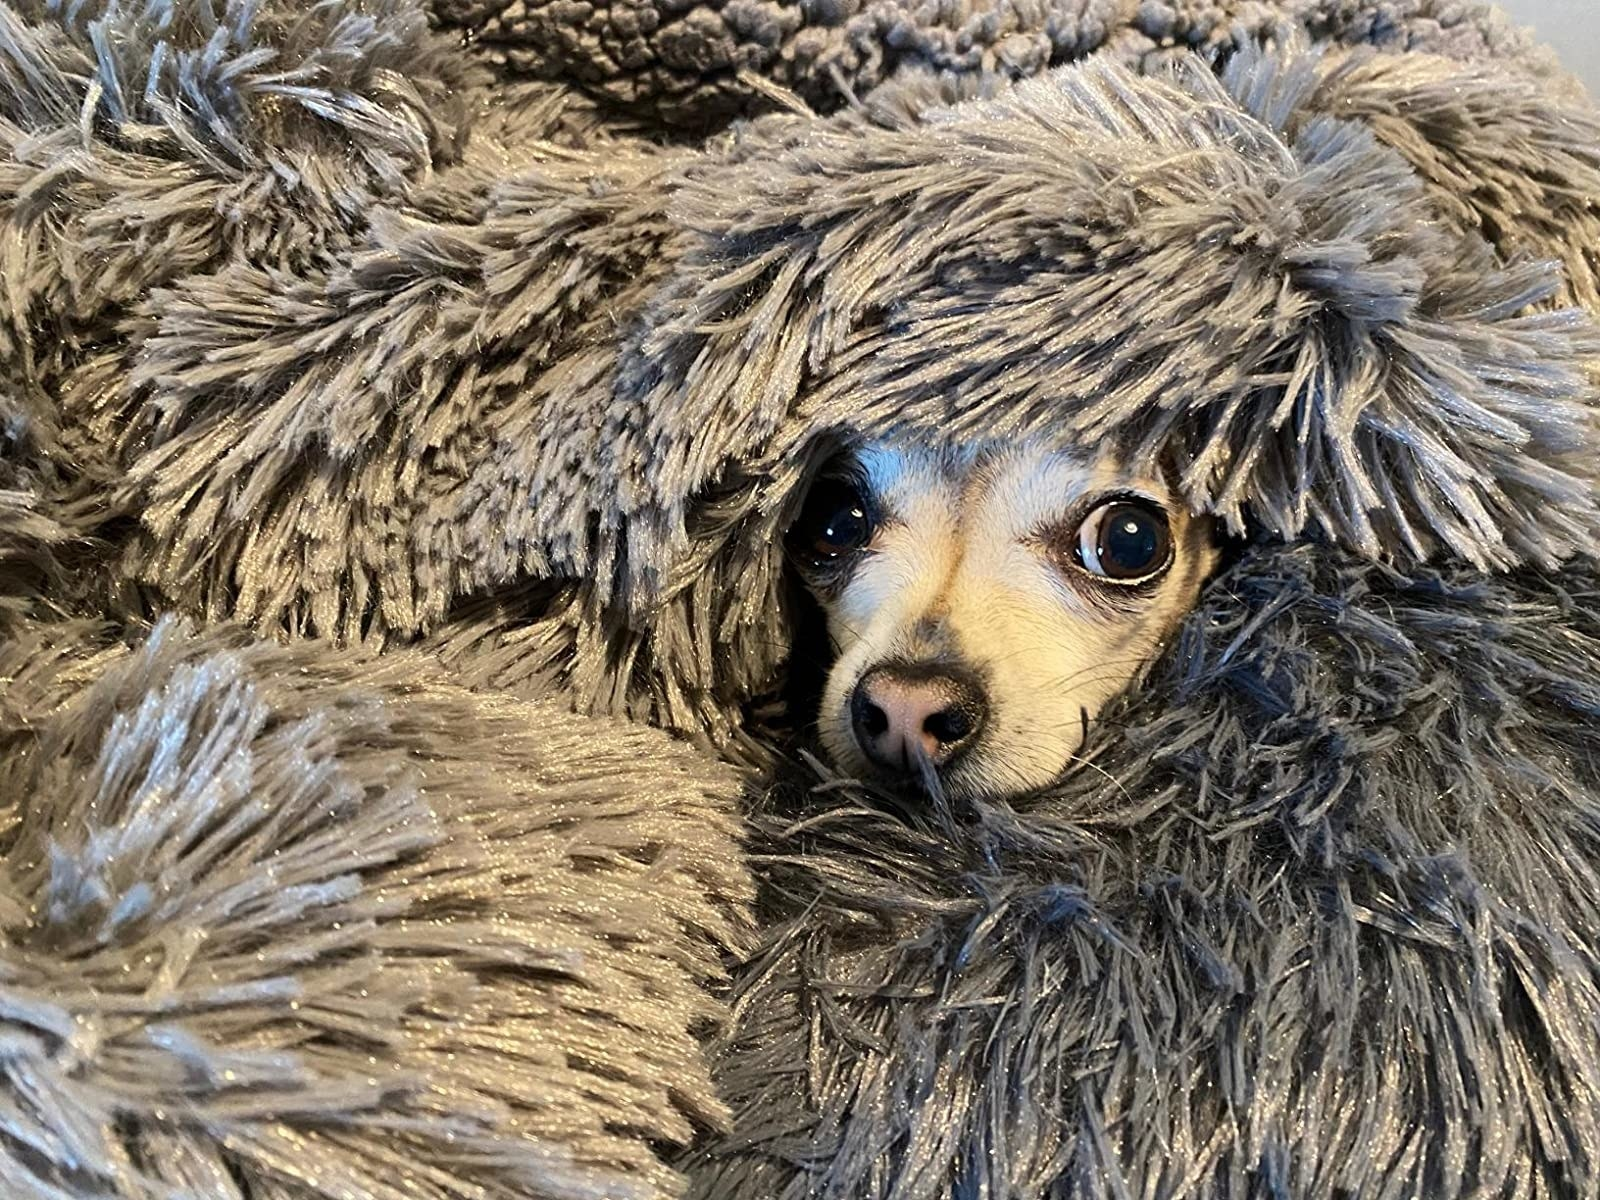 small dog's face peeking out from the very fuzzy gray throw